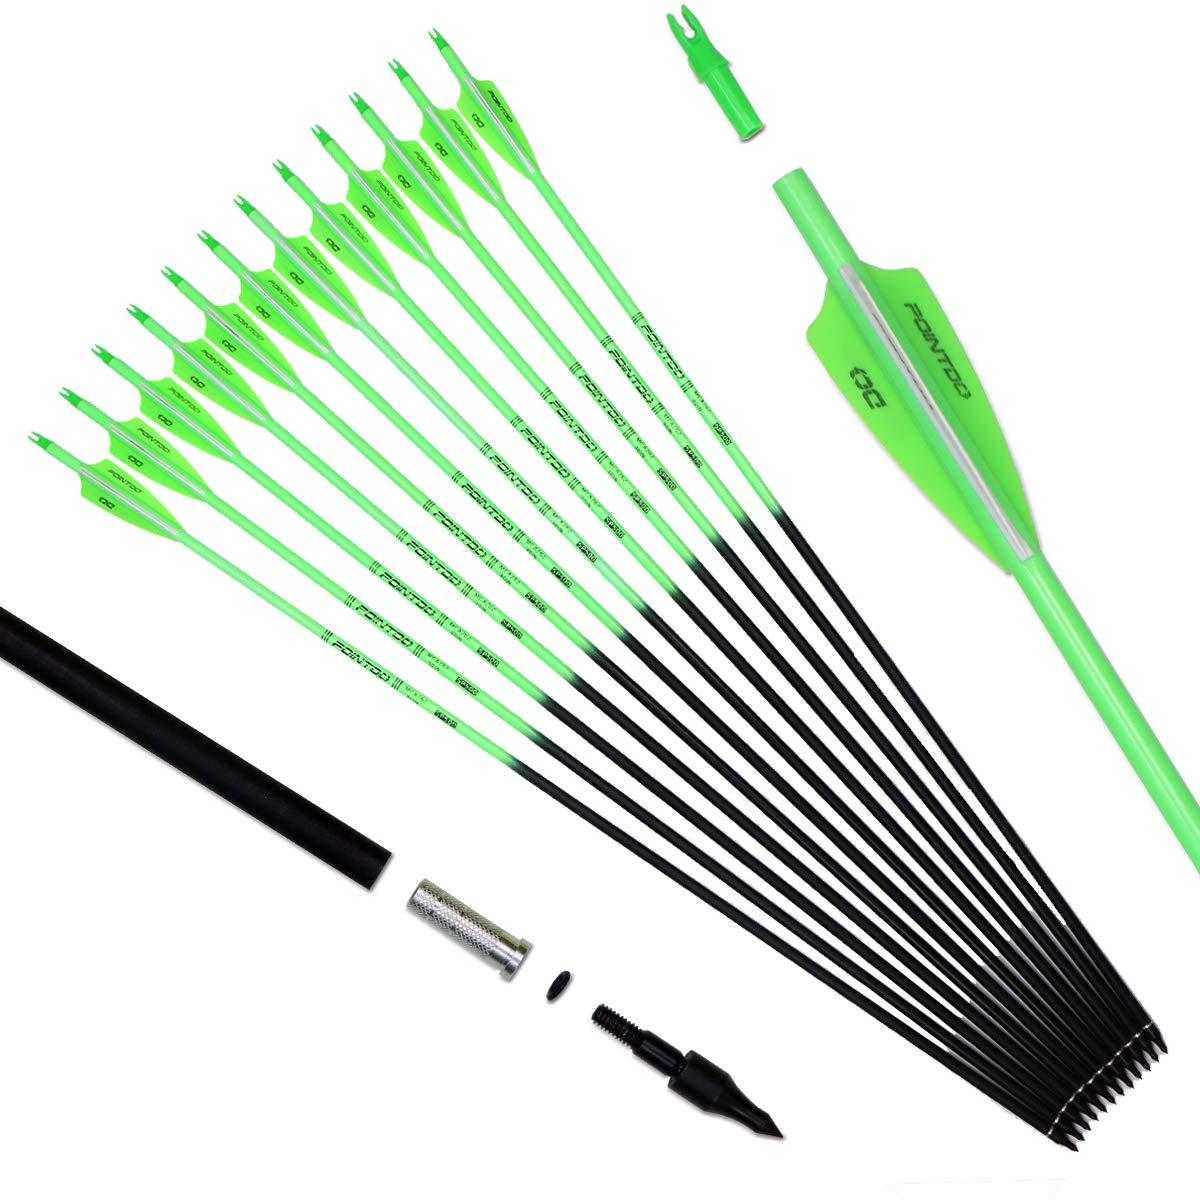 Pointdo 30inch Carbon Arrow Fluorescence Color Targeting and Hunting Practice Arrows for Recurve and Compound Bow with Removable Tips (Fluorescein Green) by Pointdo